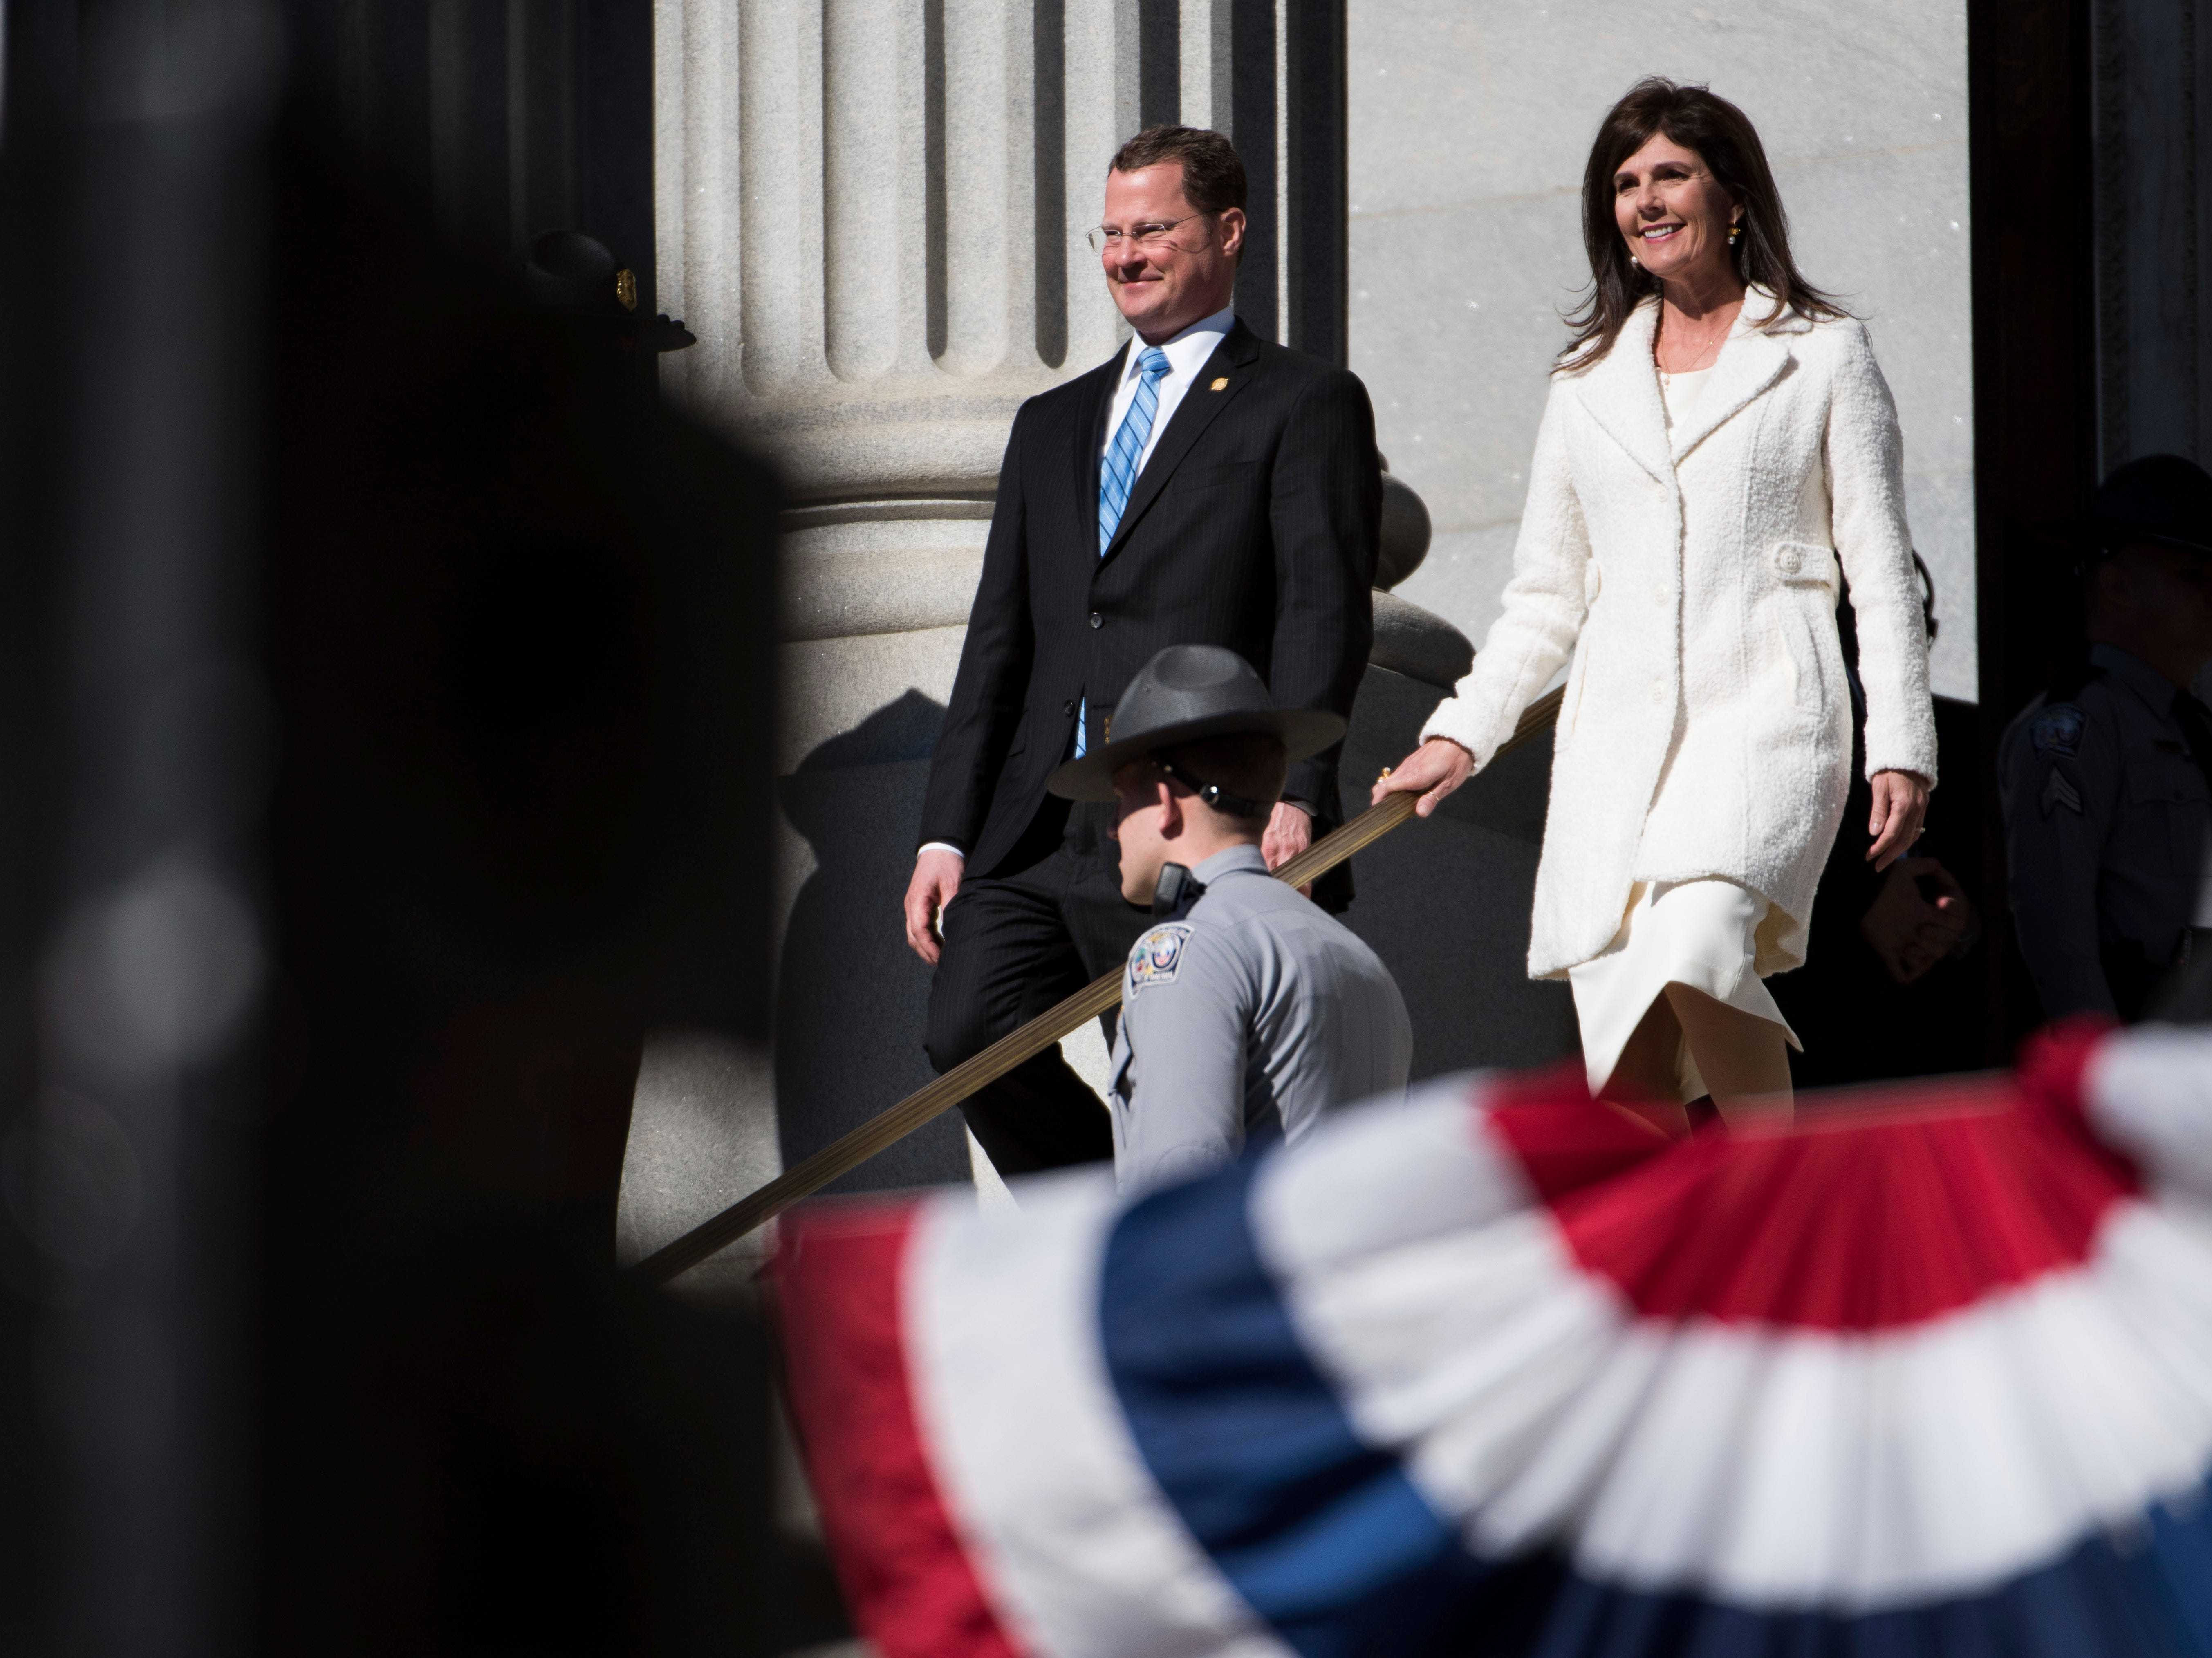 Outgoing South Carolina Lt. Governor, Kevin Bryant, left, walks down the steps with incoming Lt. Governor Pamela Evette during inauguration ceremonies for Governor Henry McMaster at the South Carolina Statehouse, Wednesday, Jan. 9, 2019, in Columbia, S.C. (AP Photo/Sean Rayford)